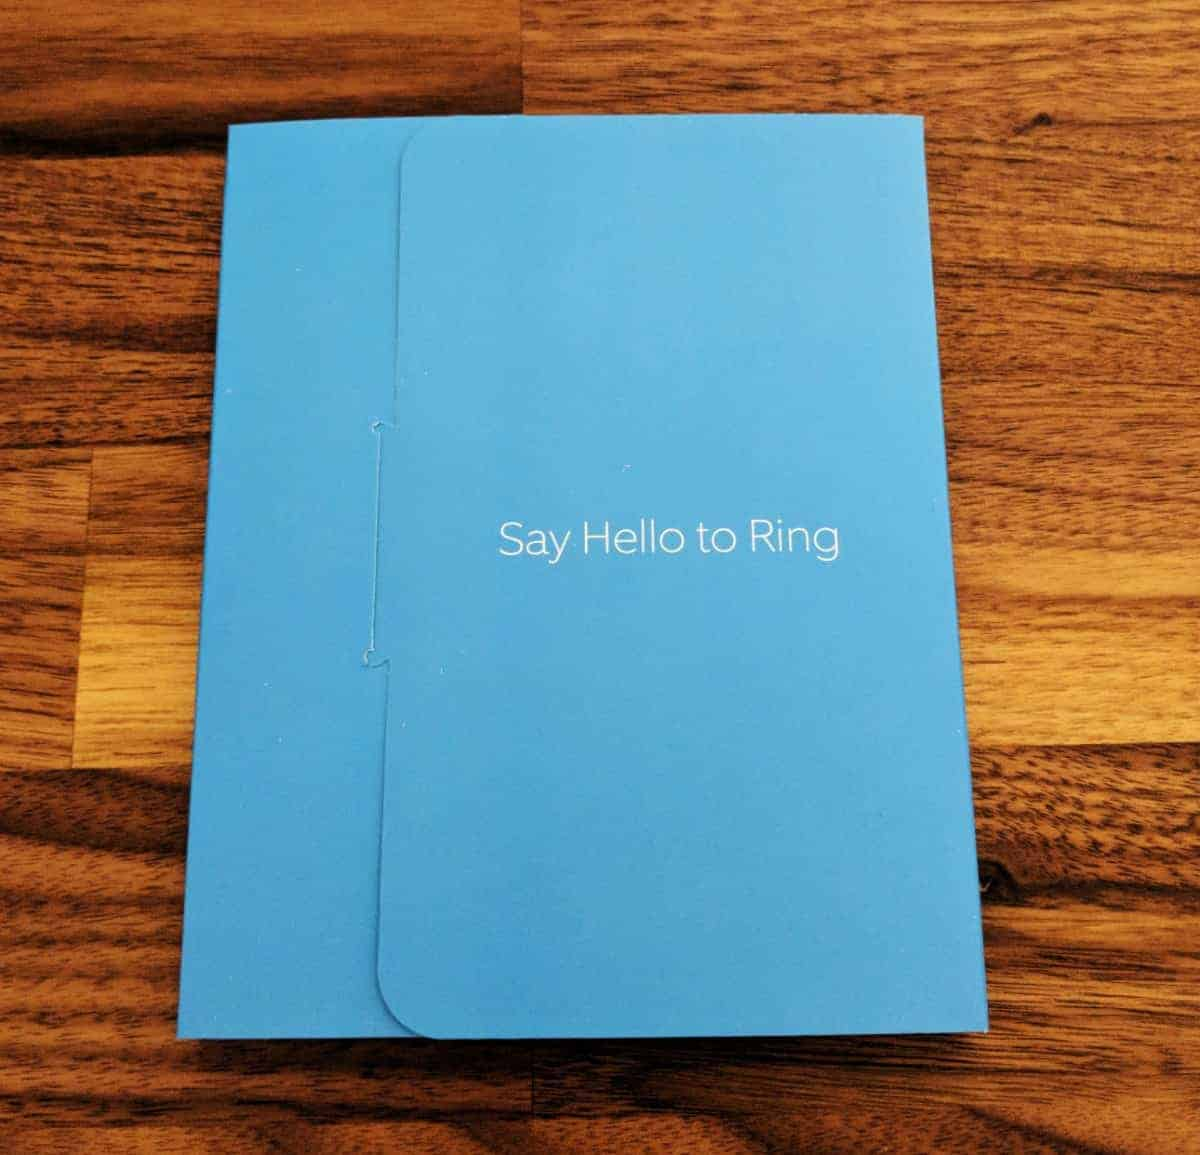 Ring-Video-2-Photos-14 Ring Video Doorbell 2 Review